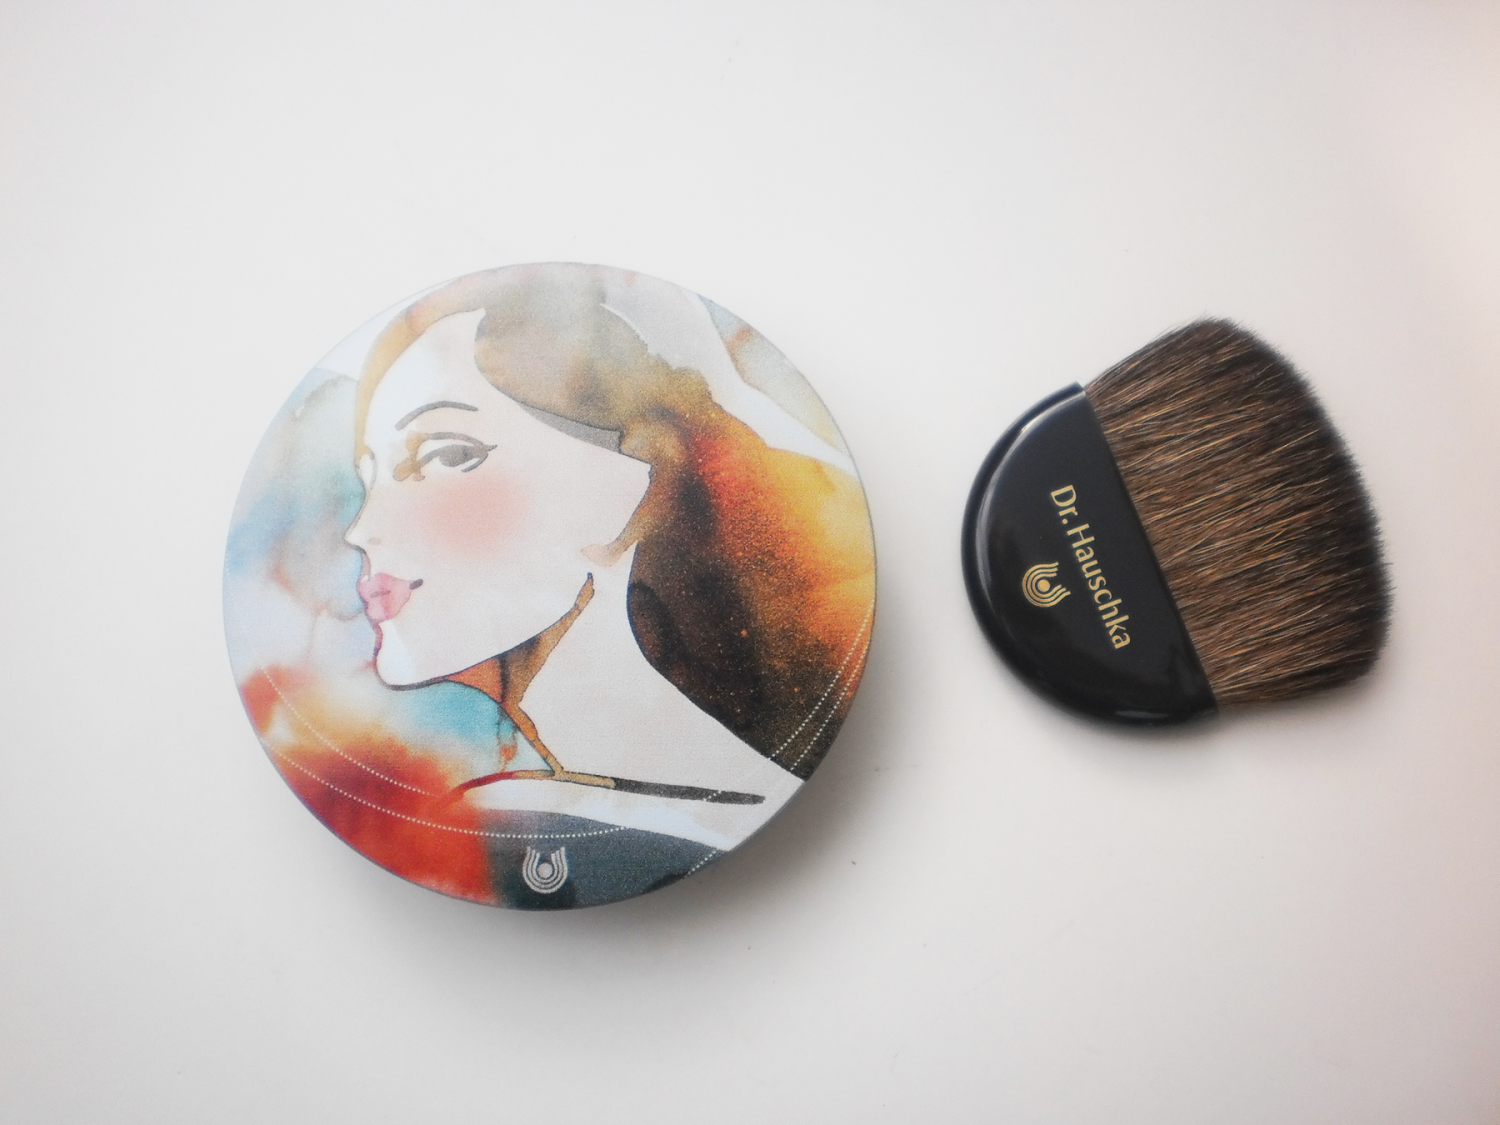 Winactie Like & Share: Dr. Hauschka Bronzing Powder Limited Edition (gesloten)